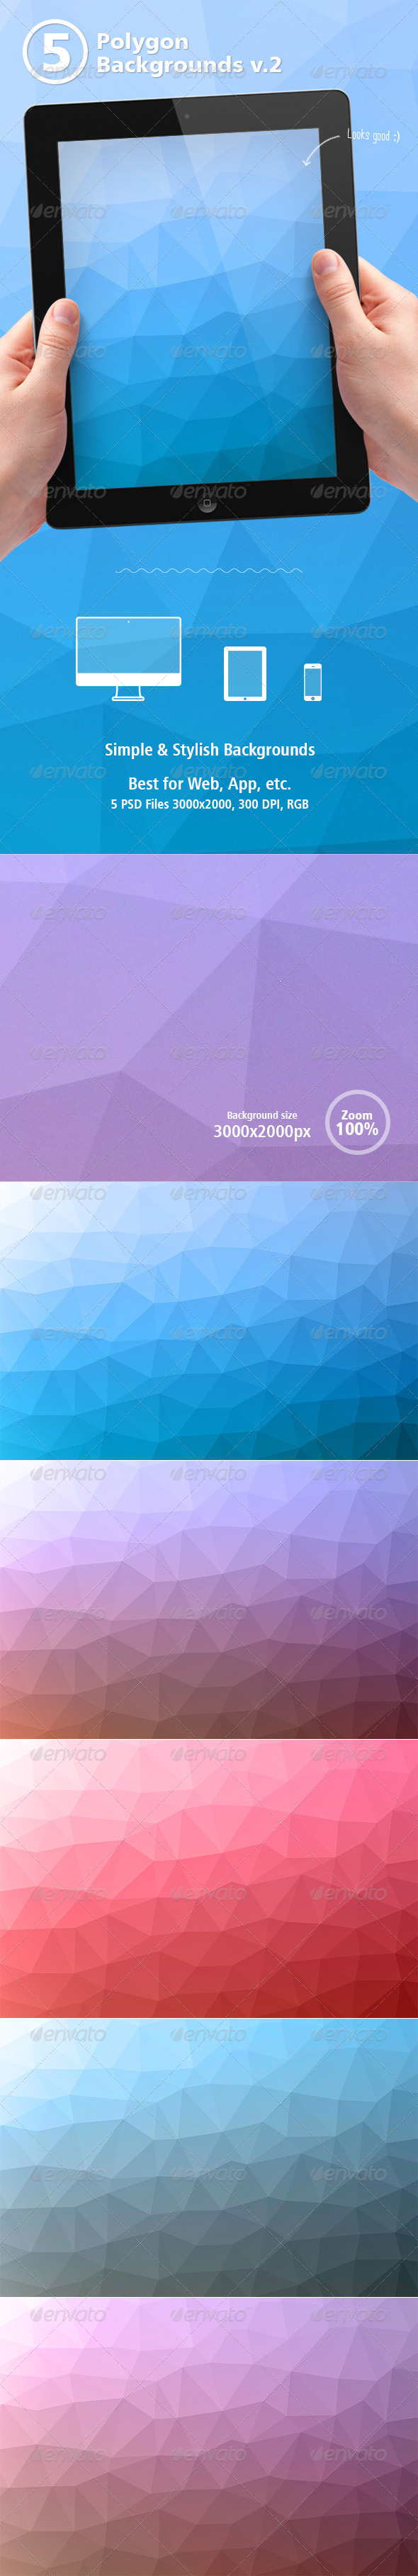 GraphicRiver Polygon Backgrounds vol.2 8231523